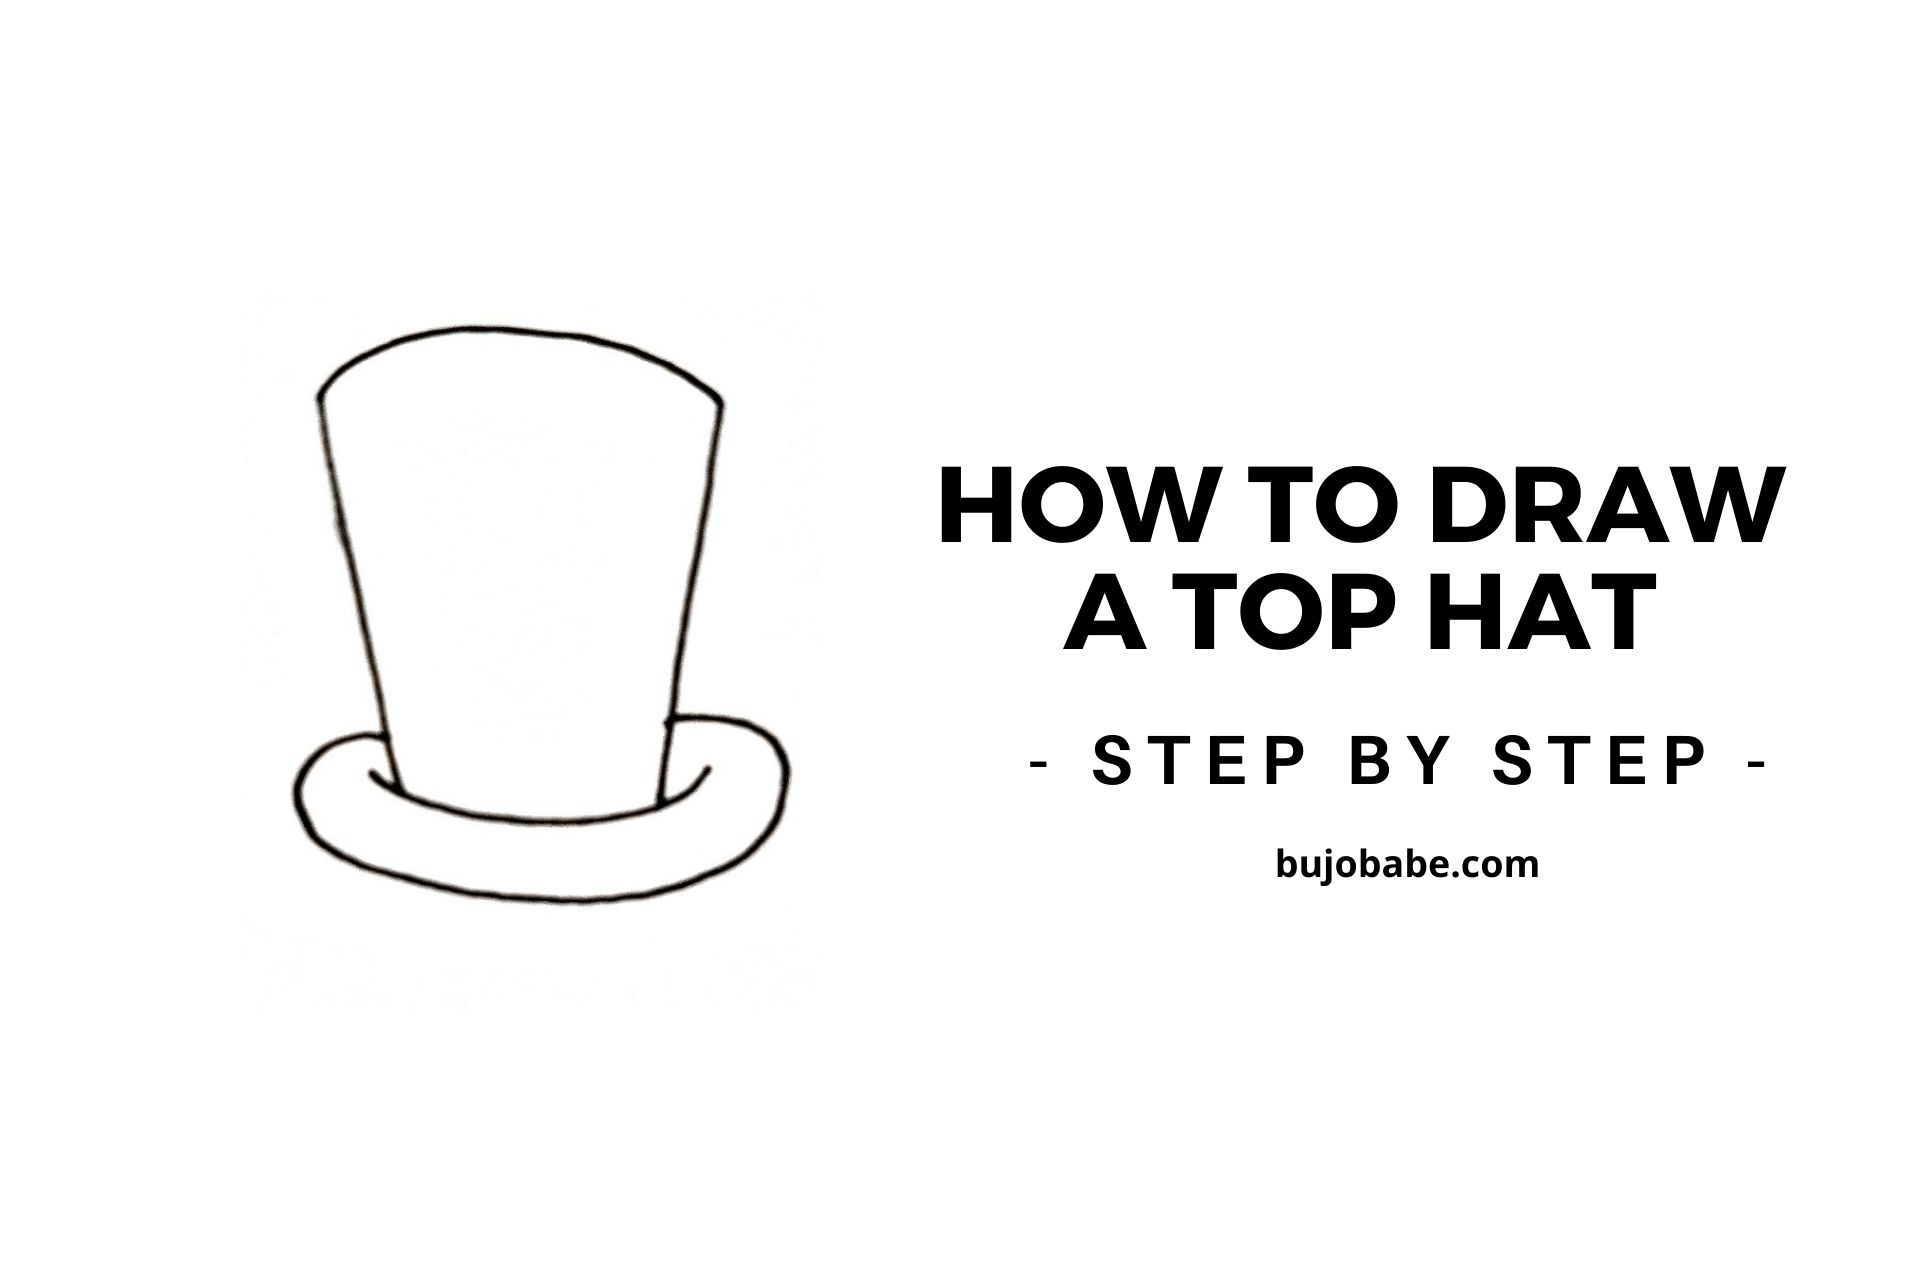 how to draw a top hat step by step